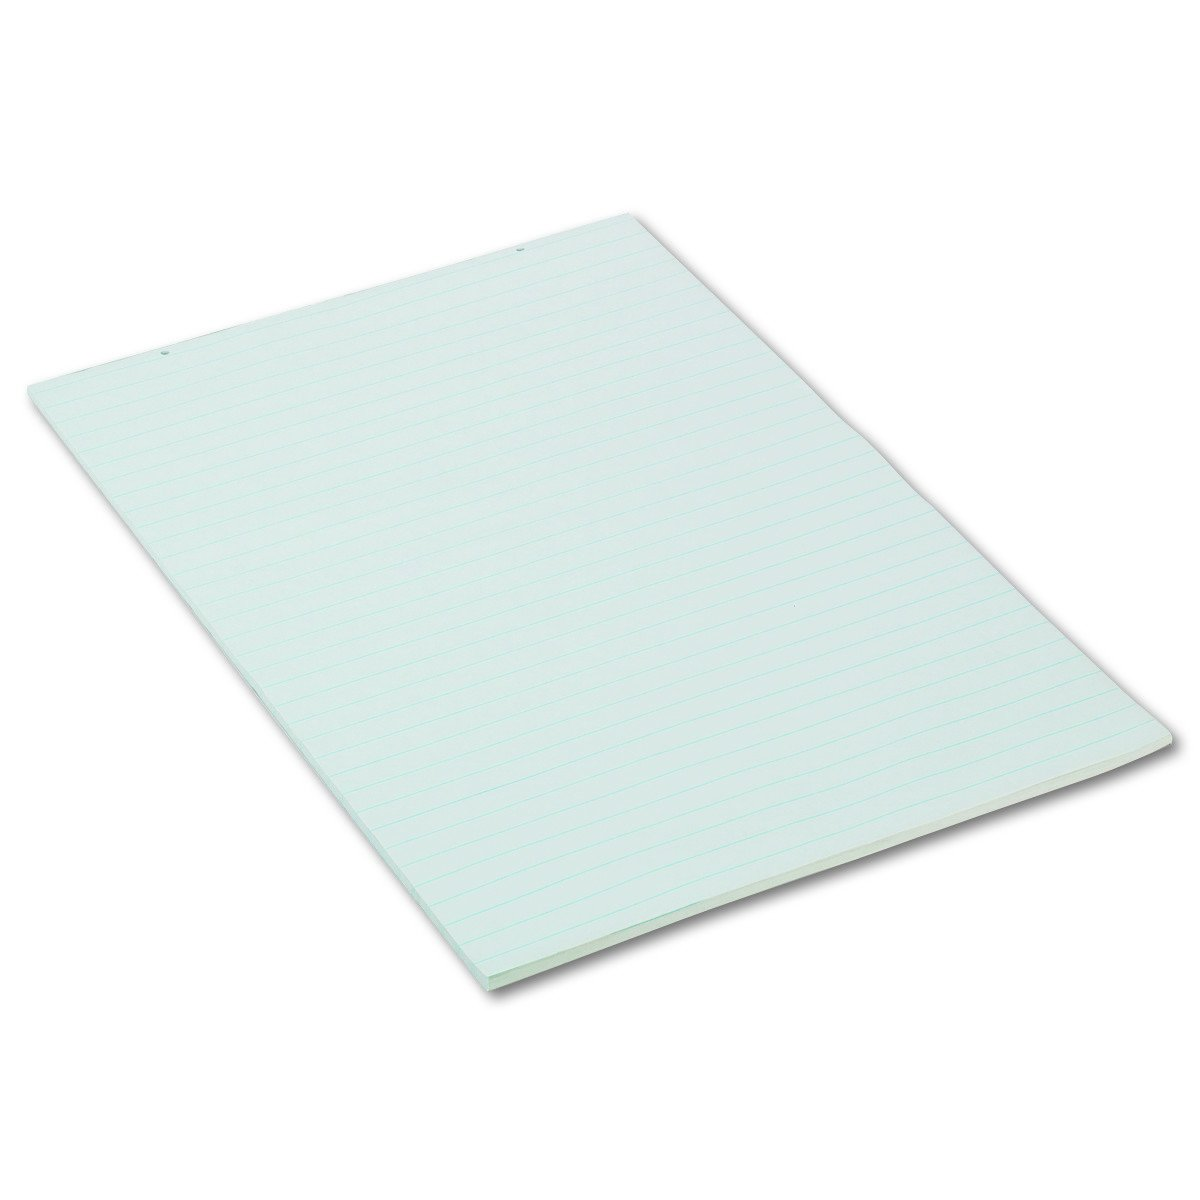 Pacon 3052 Primary Chart Pad, 1in Short Rule, 24 x 36, White, 100 Sheets by PACON